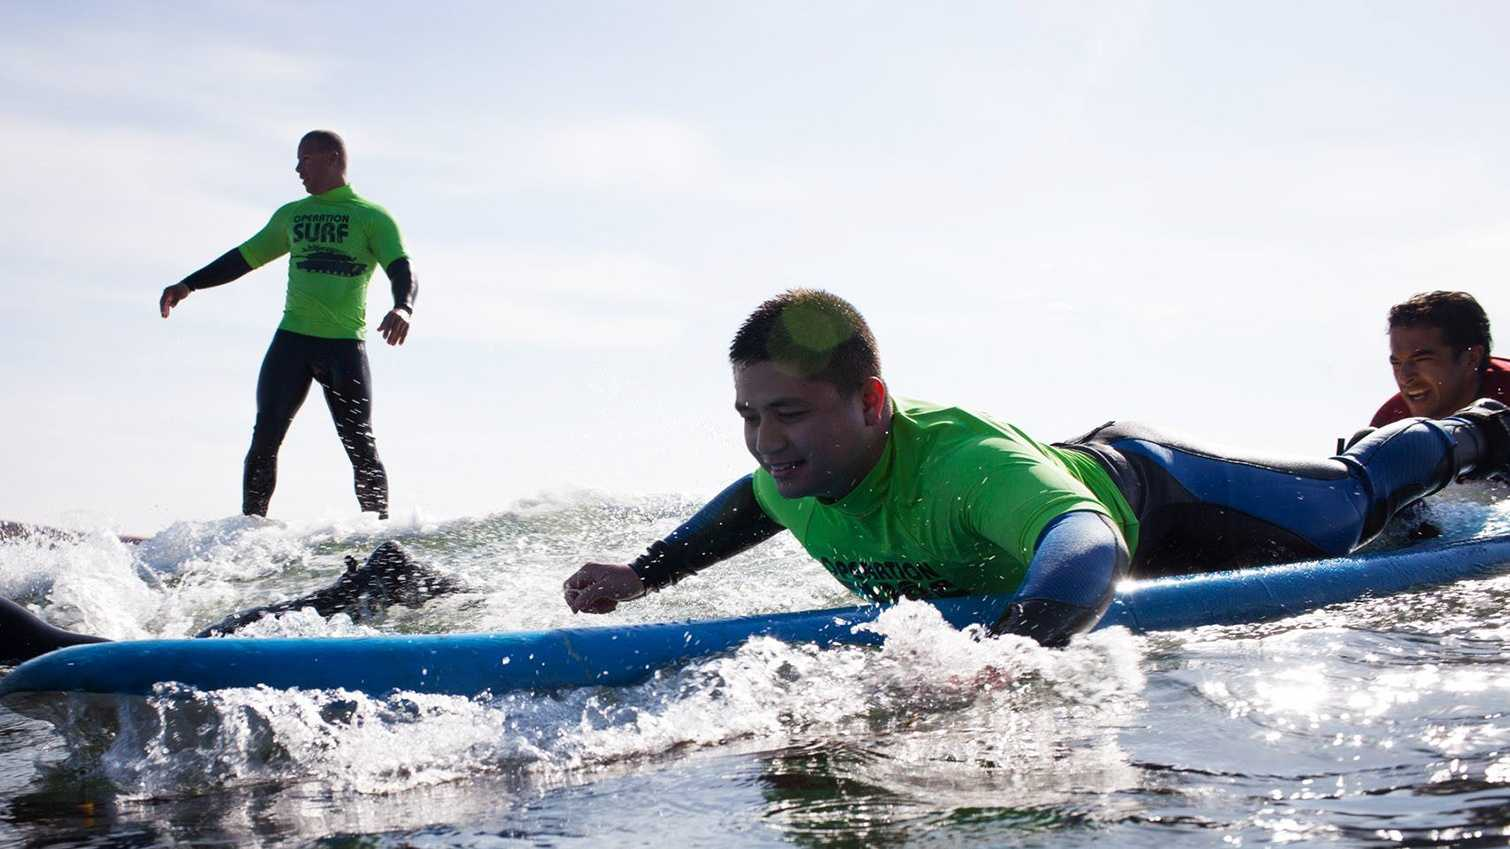 Wounded soldiers learn how to surf at Cowells Beach. (April 3, 2014)